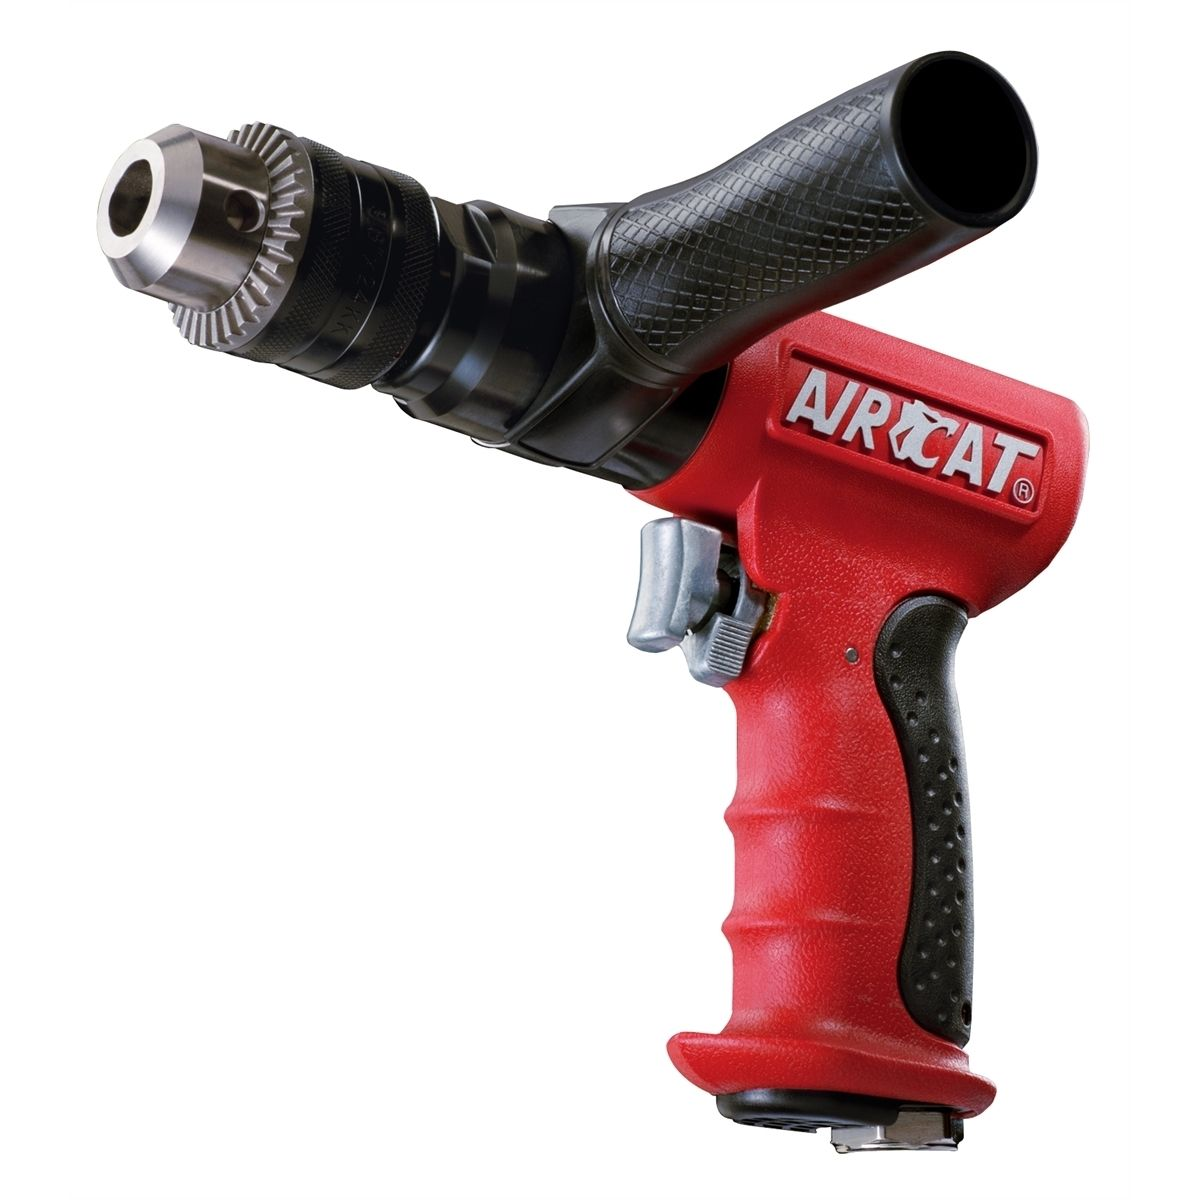 Aircat 1/2-inch Reversible Composite Drill